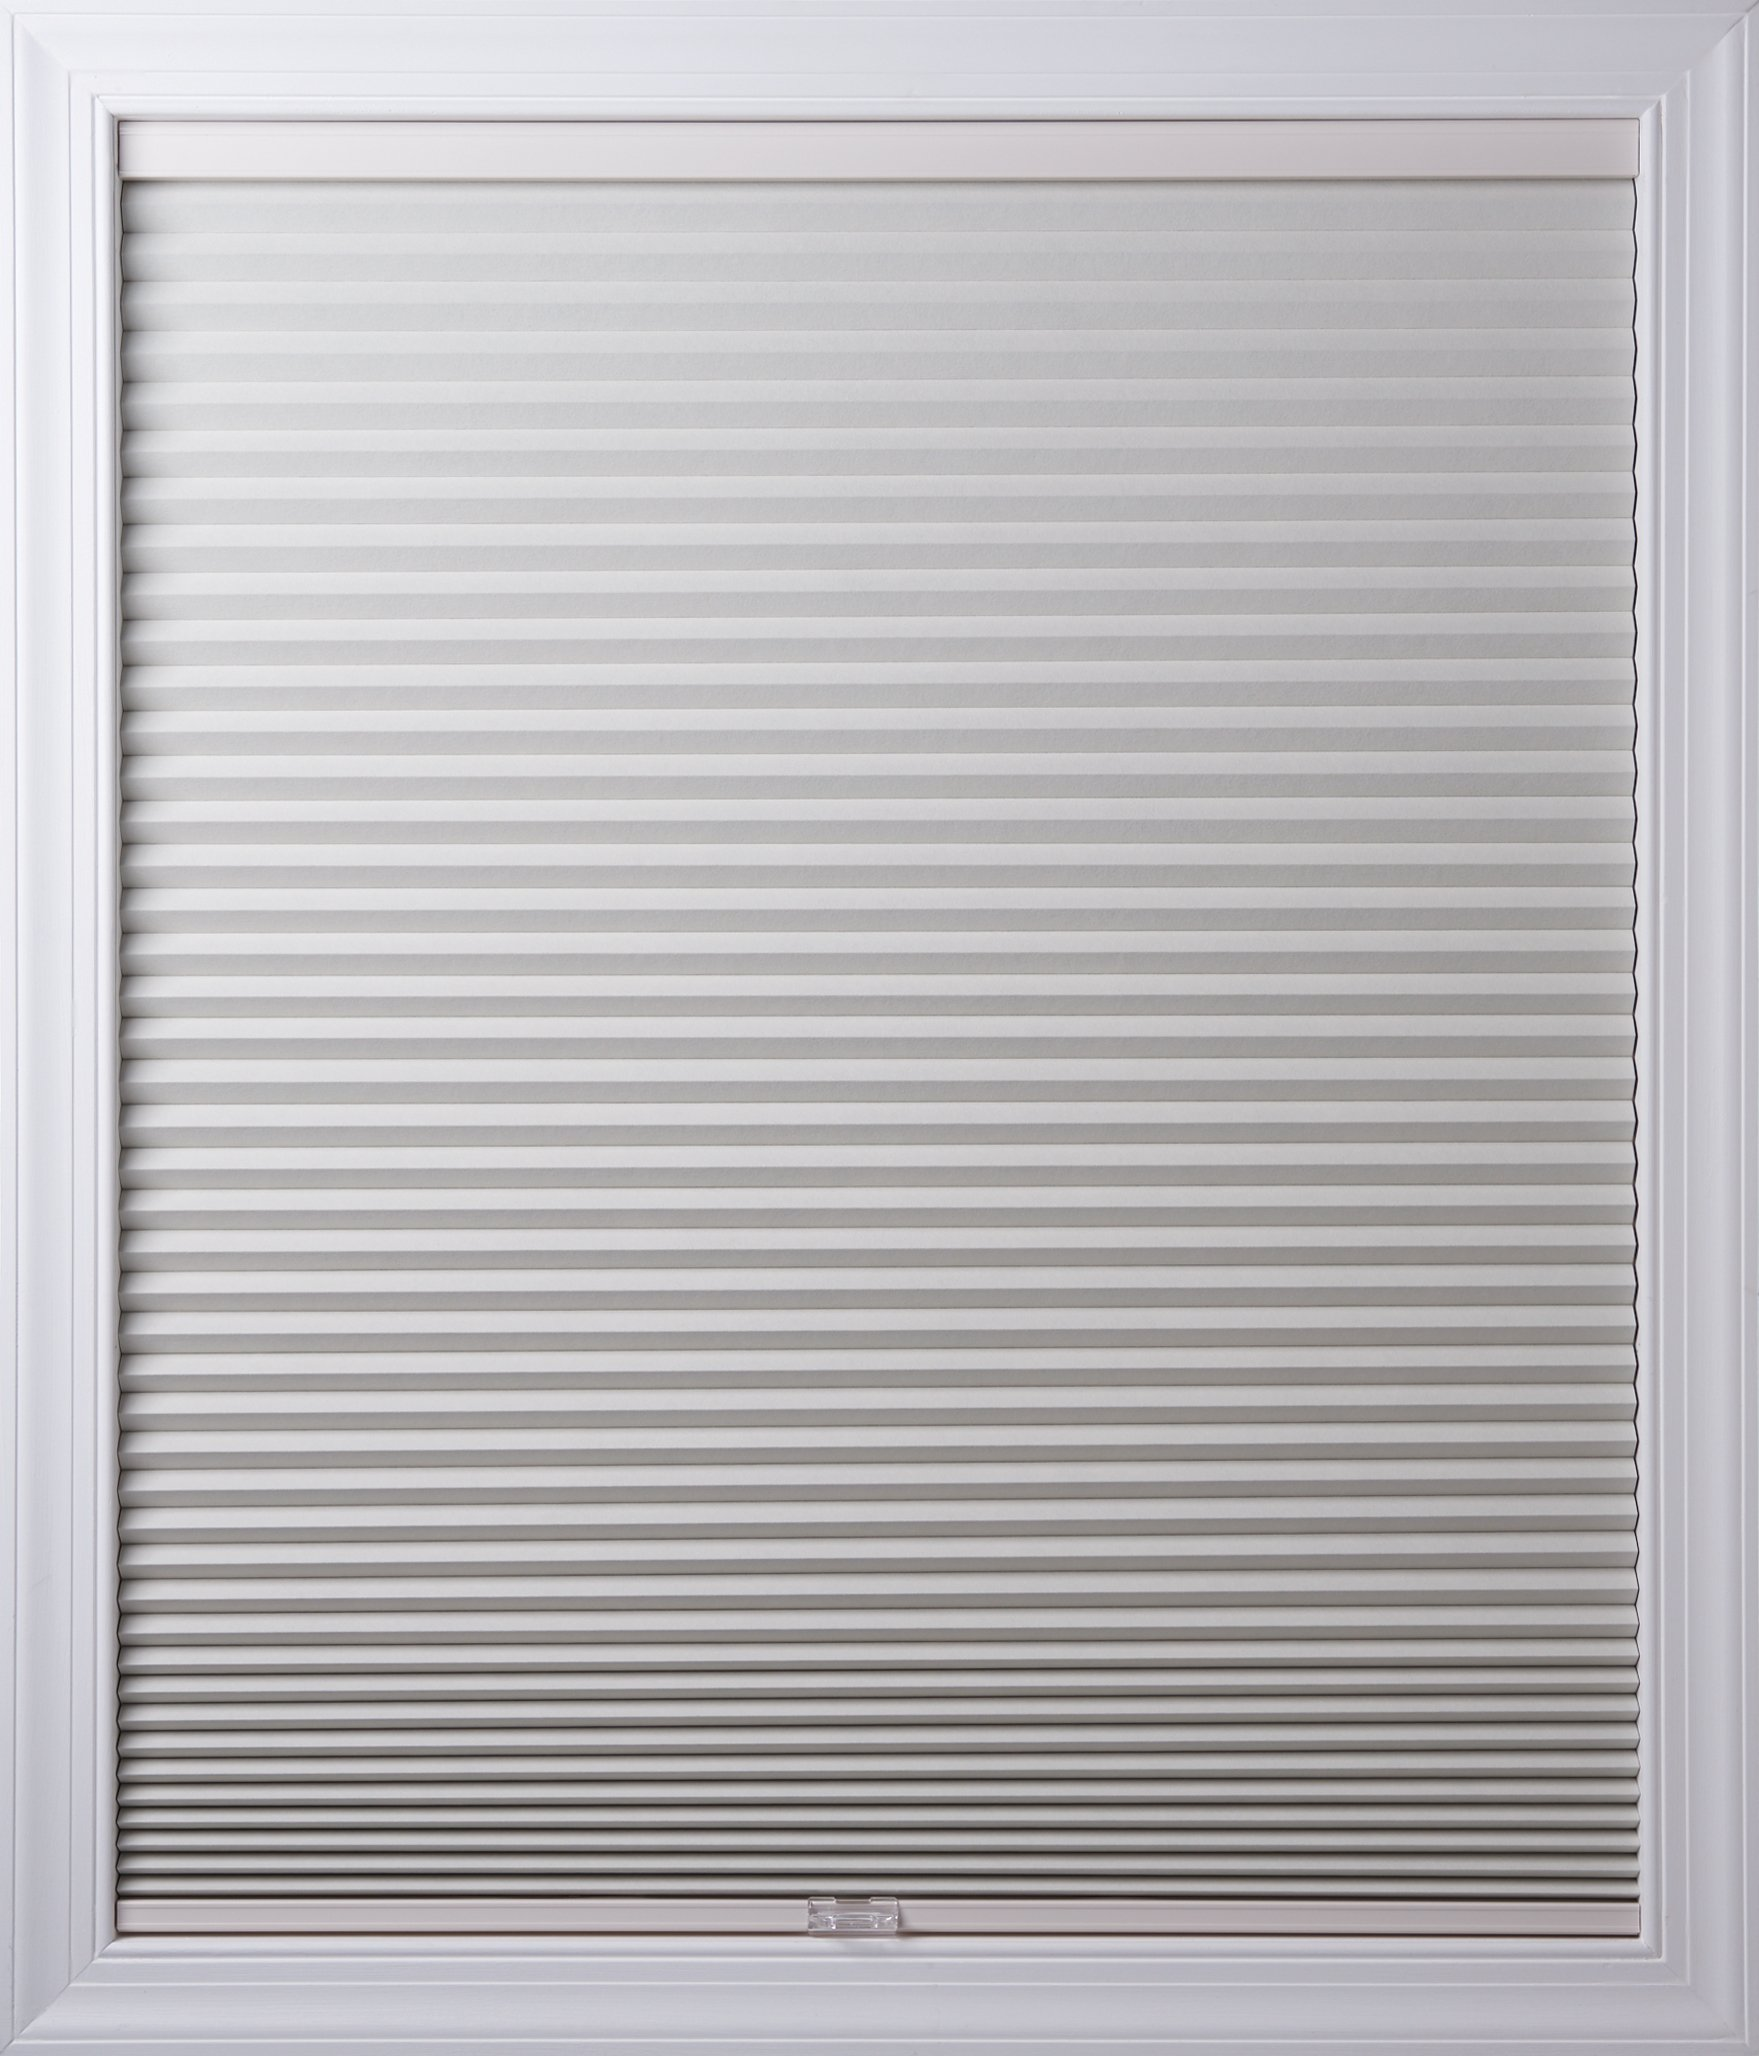 New Age Blinds Room Darkening Inside Frame Mount Cordless Cellular Shade, 46 x 48-Inch, White Dove by New Age Blinds